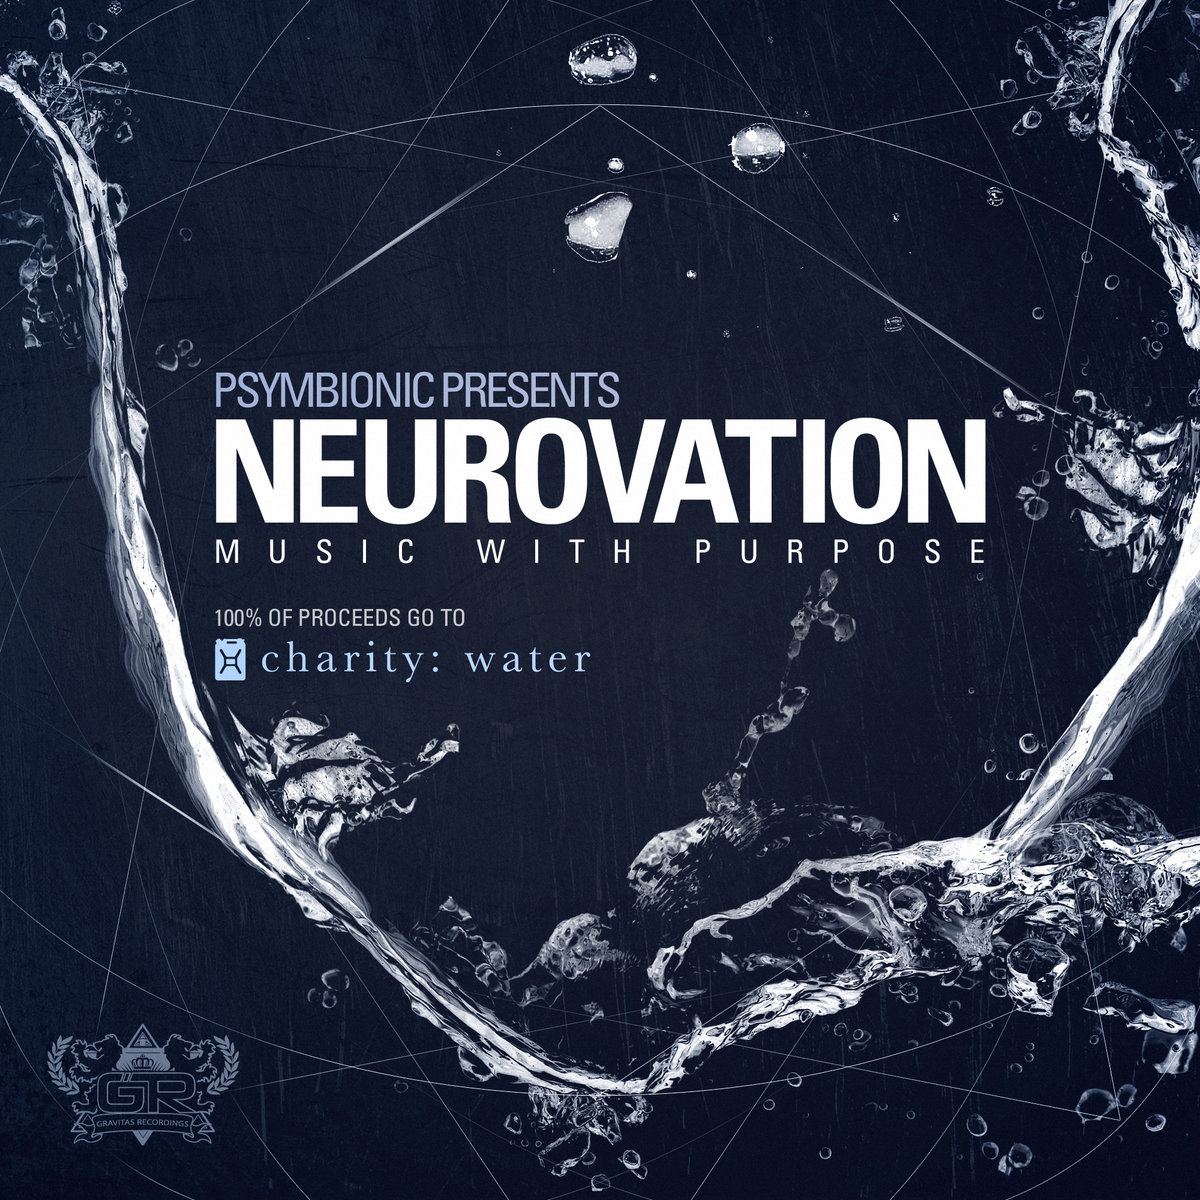 Govinda - Another Night Gone @ 'Psymbionic Presents: Neurovation' album (cryptex, glitch hop)